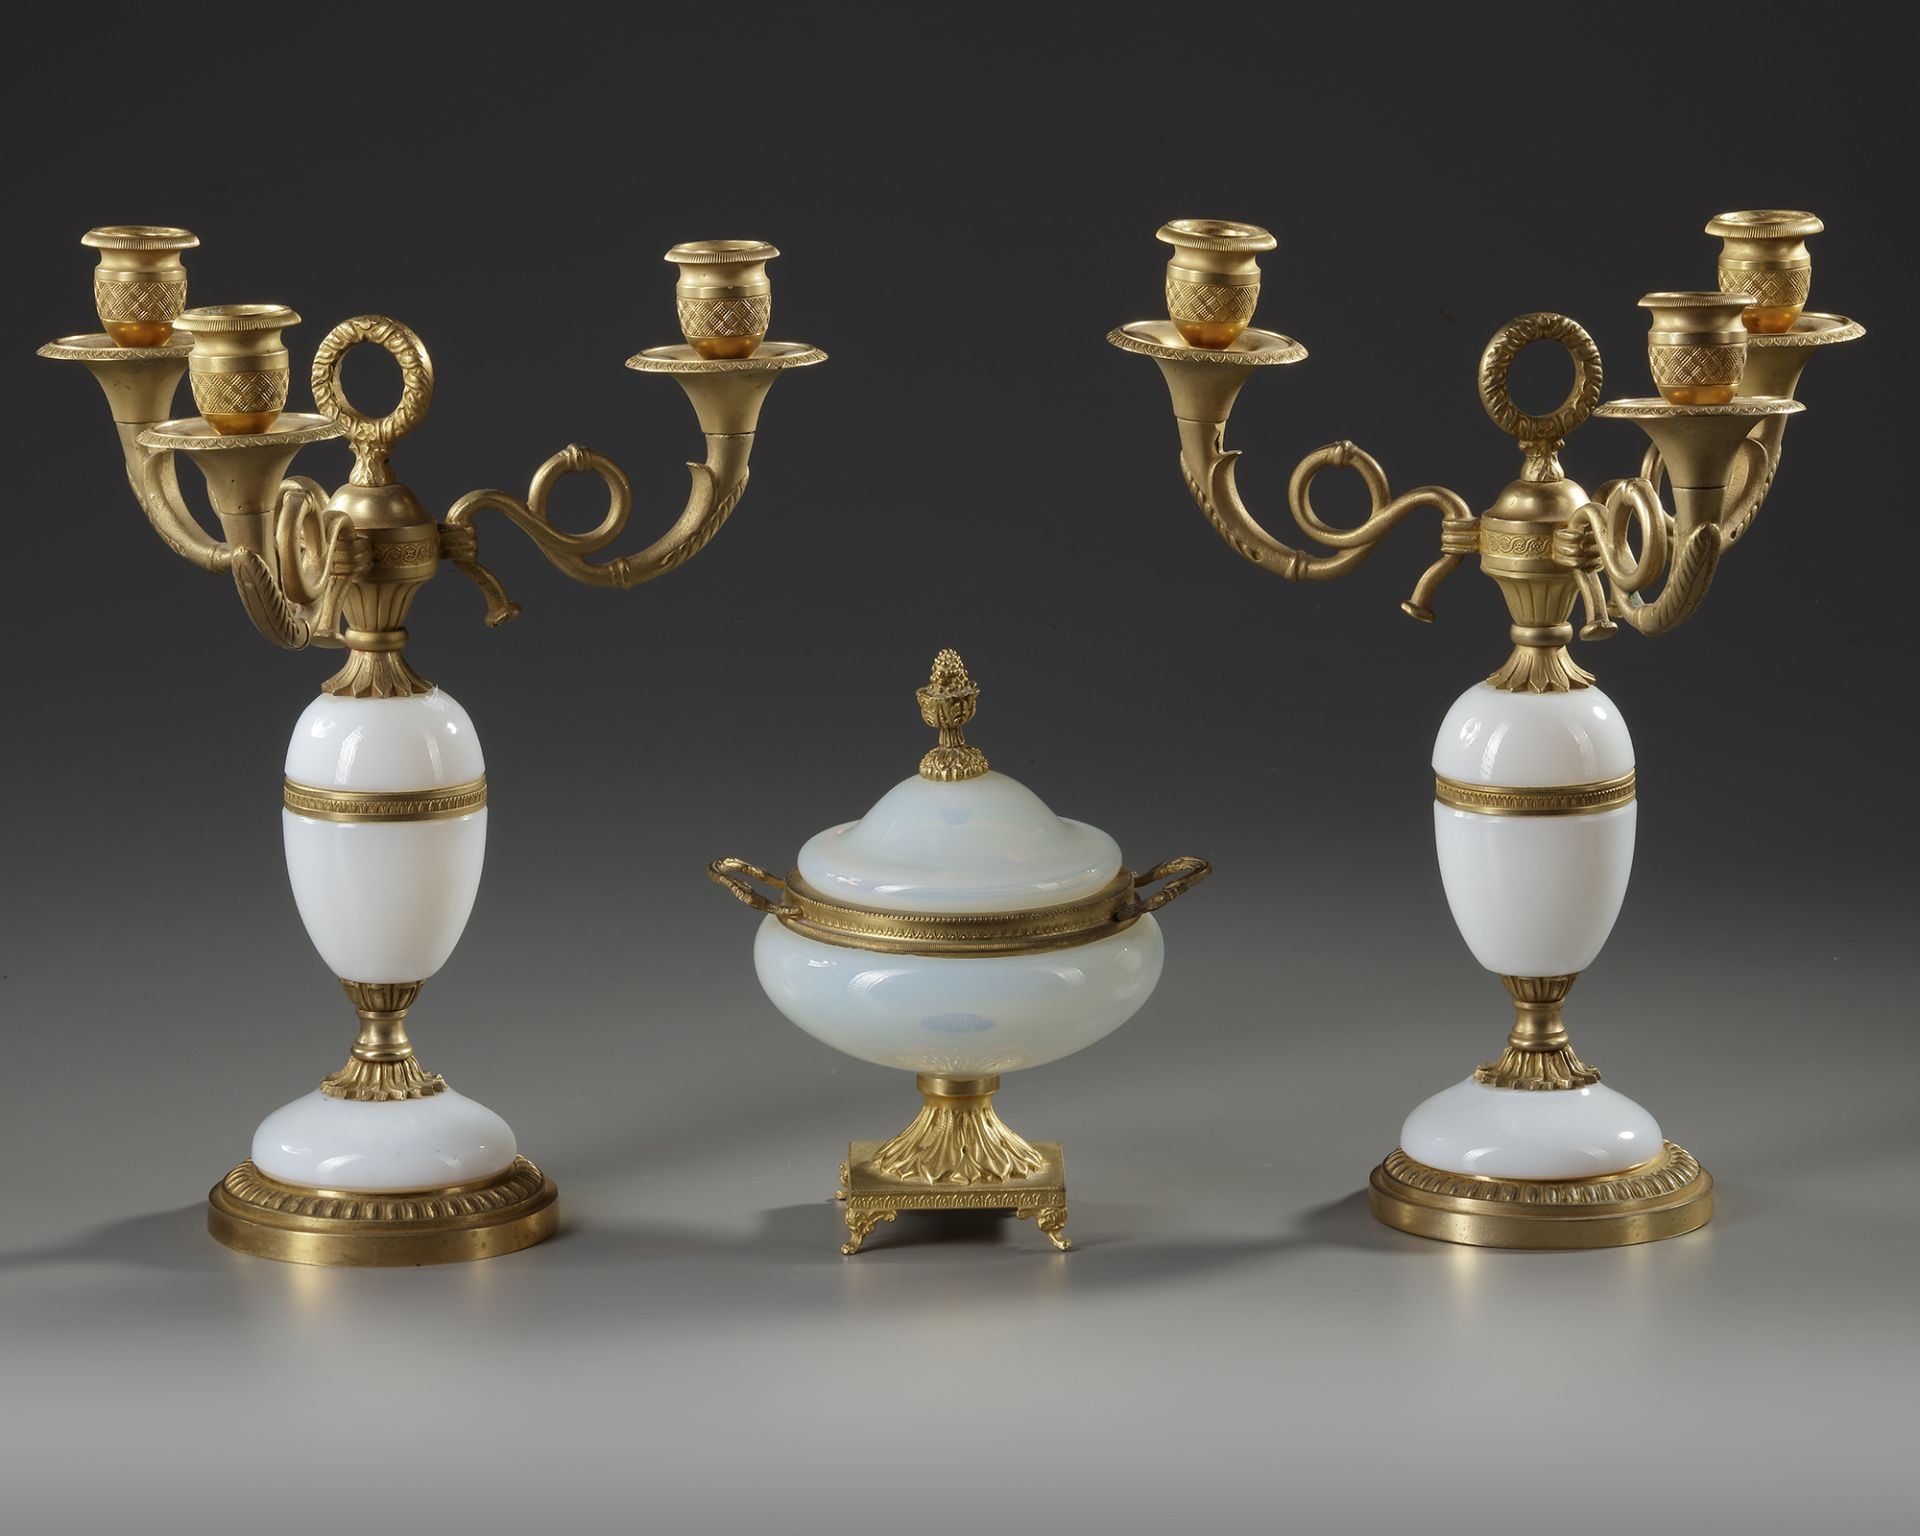 A WHITE OPALINE AND ORMOLU SET, CHARLES X, 19TH CENTURY